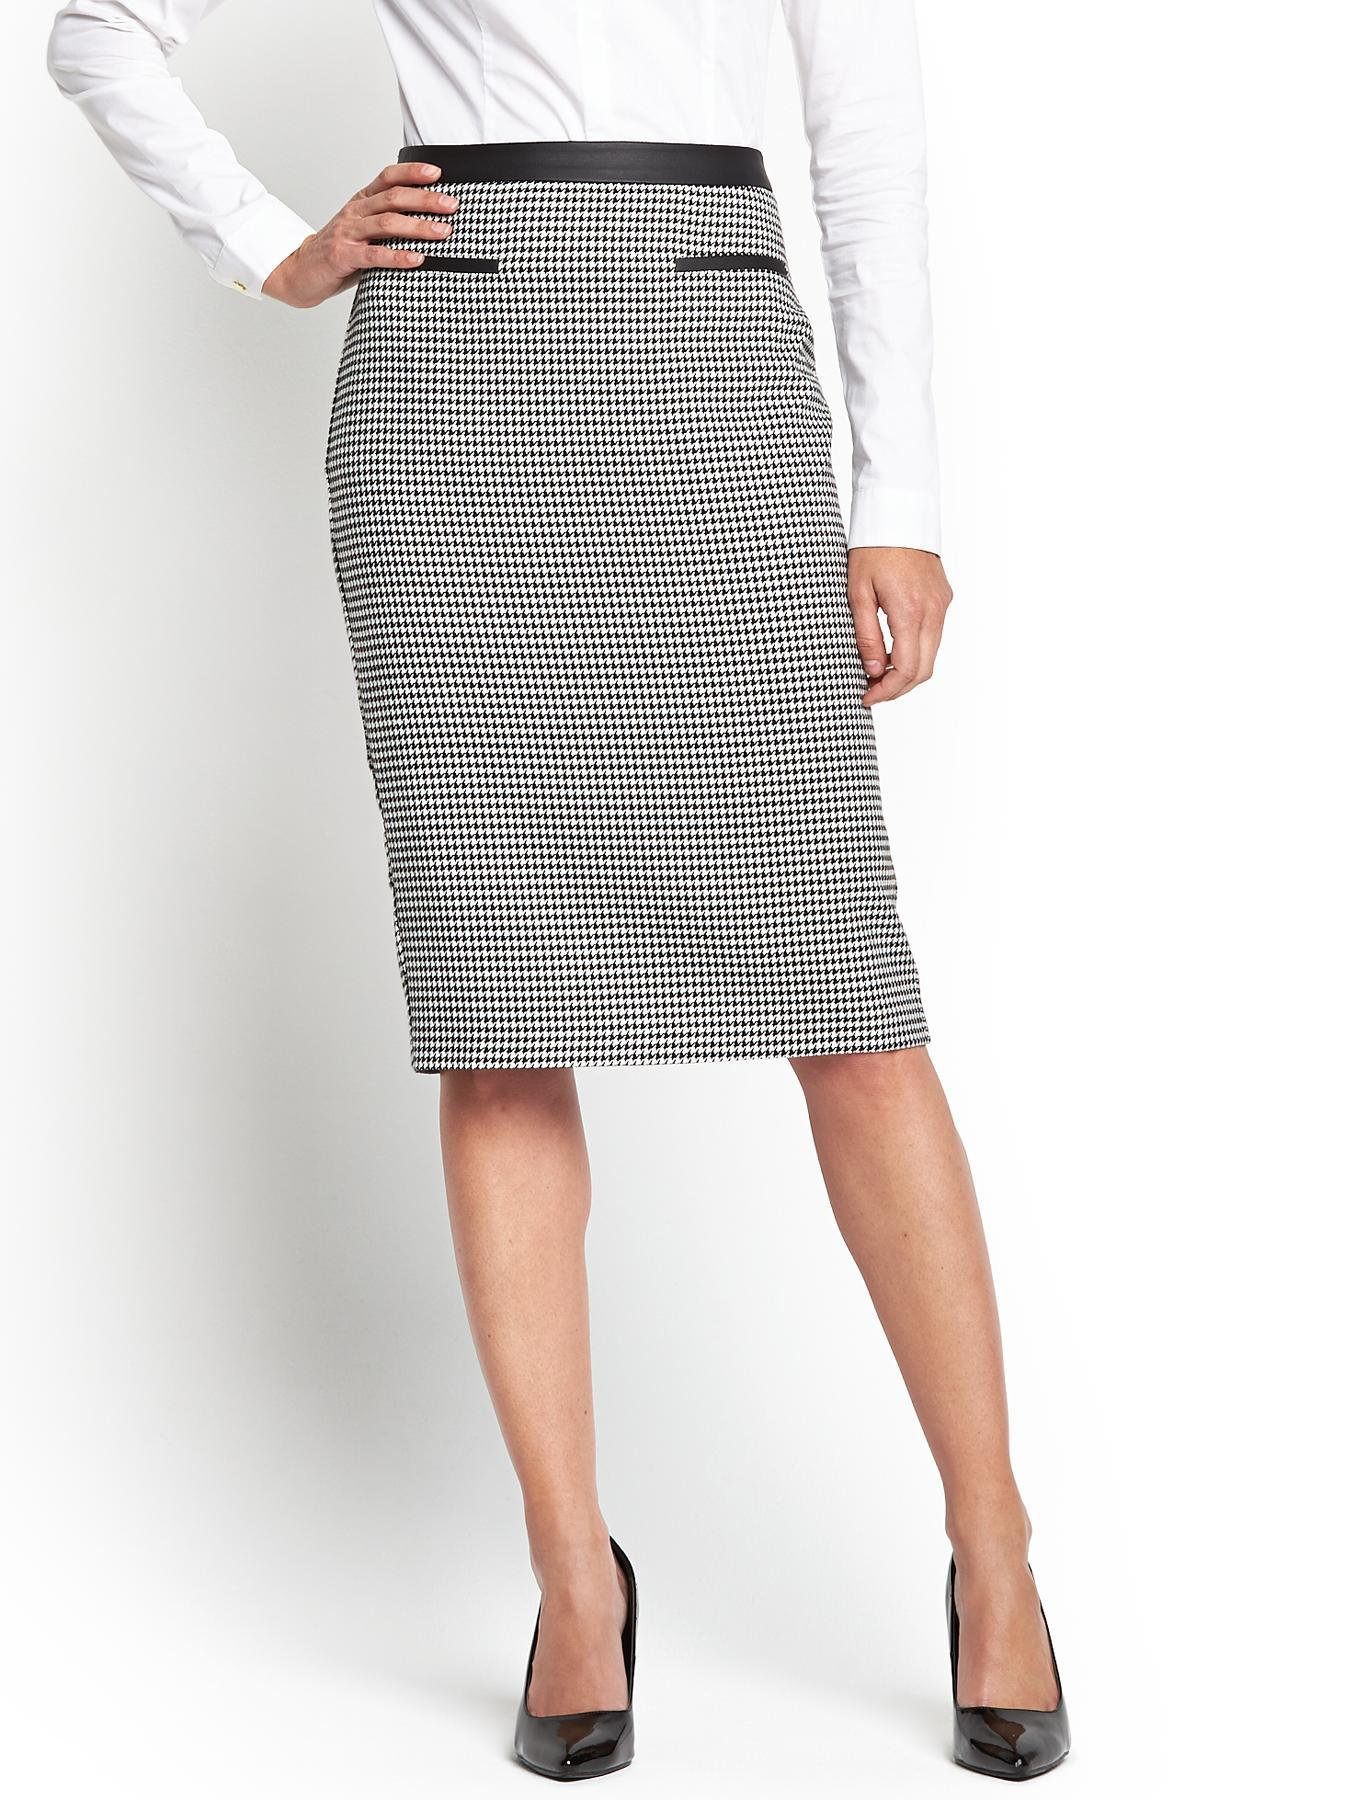 PVL Panelled Pencil Skirt, Grey,Black